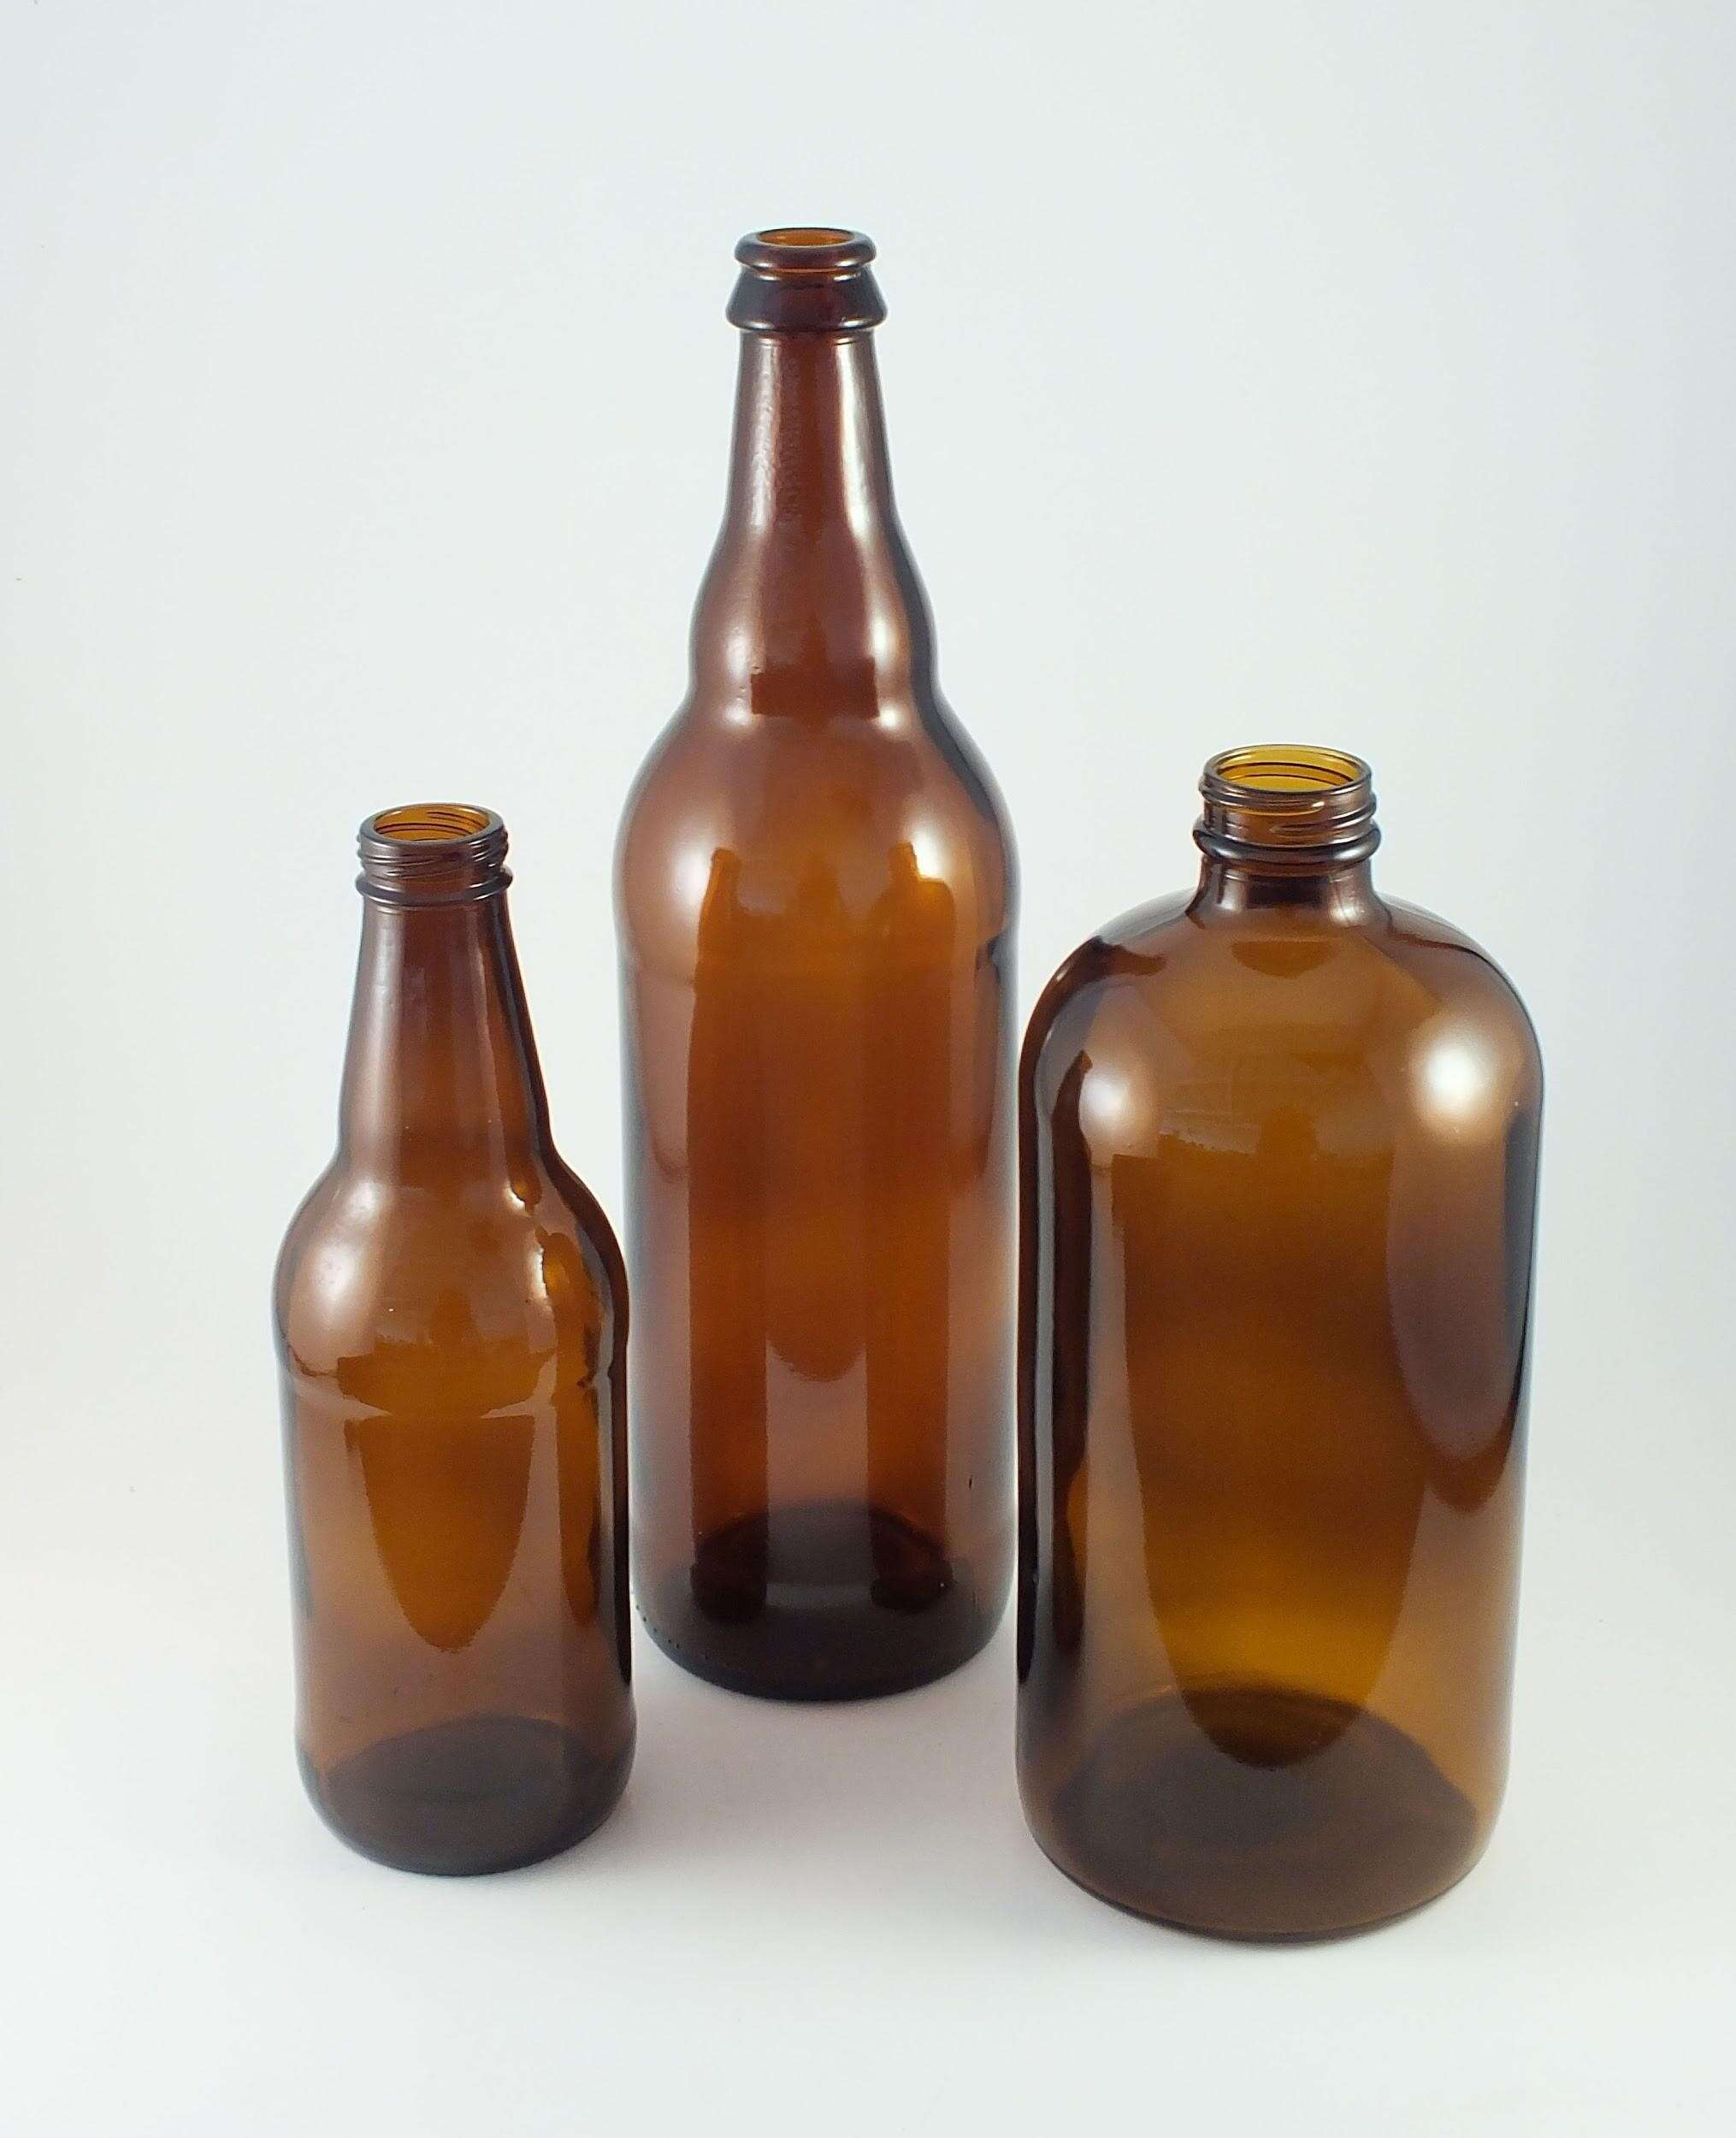 Wholesale Kombucha Bottles